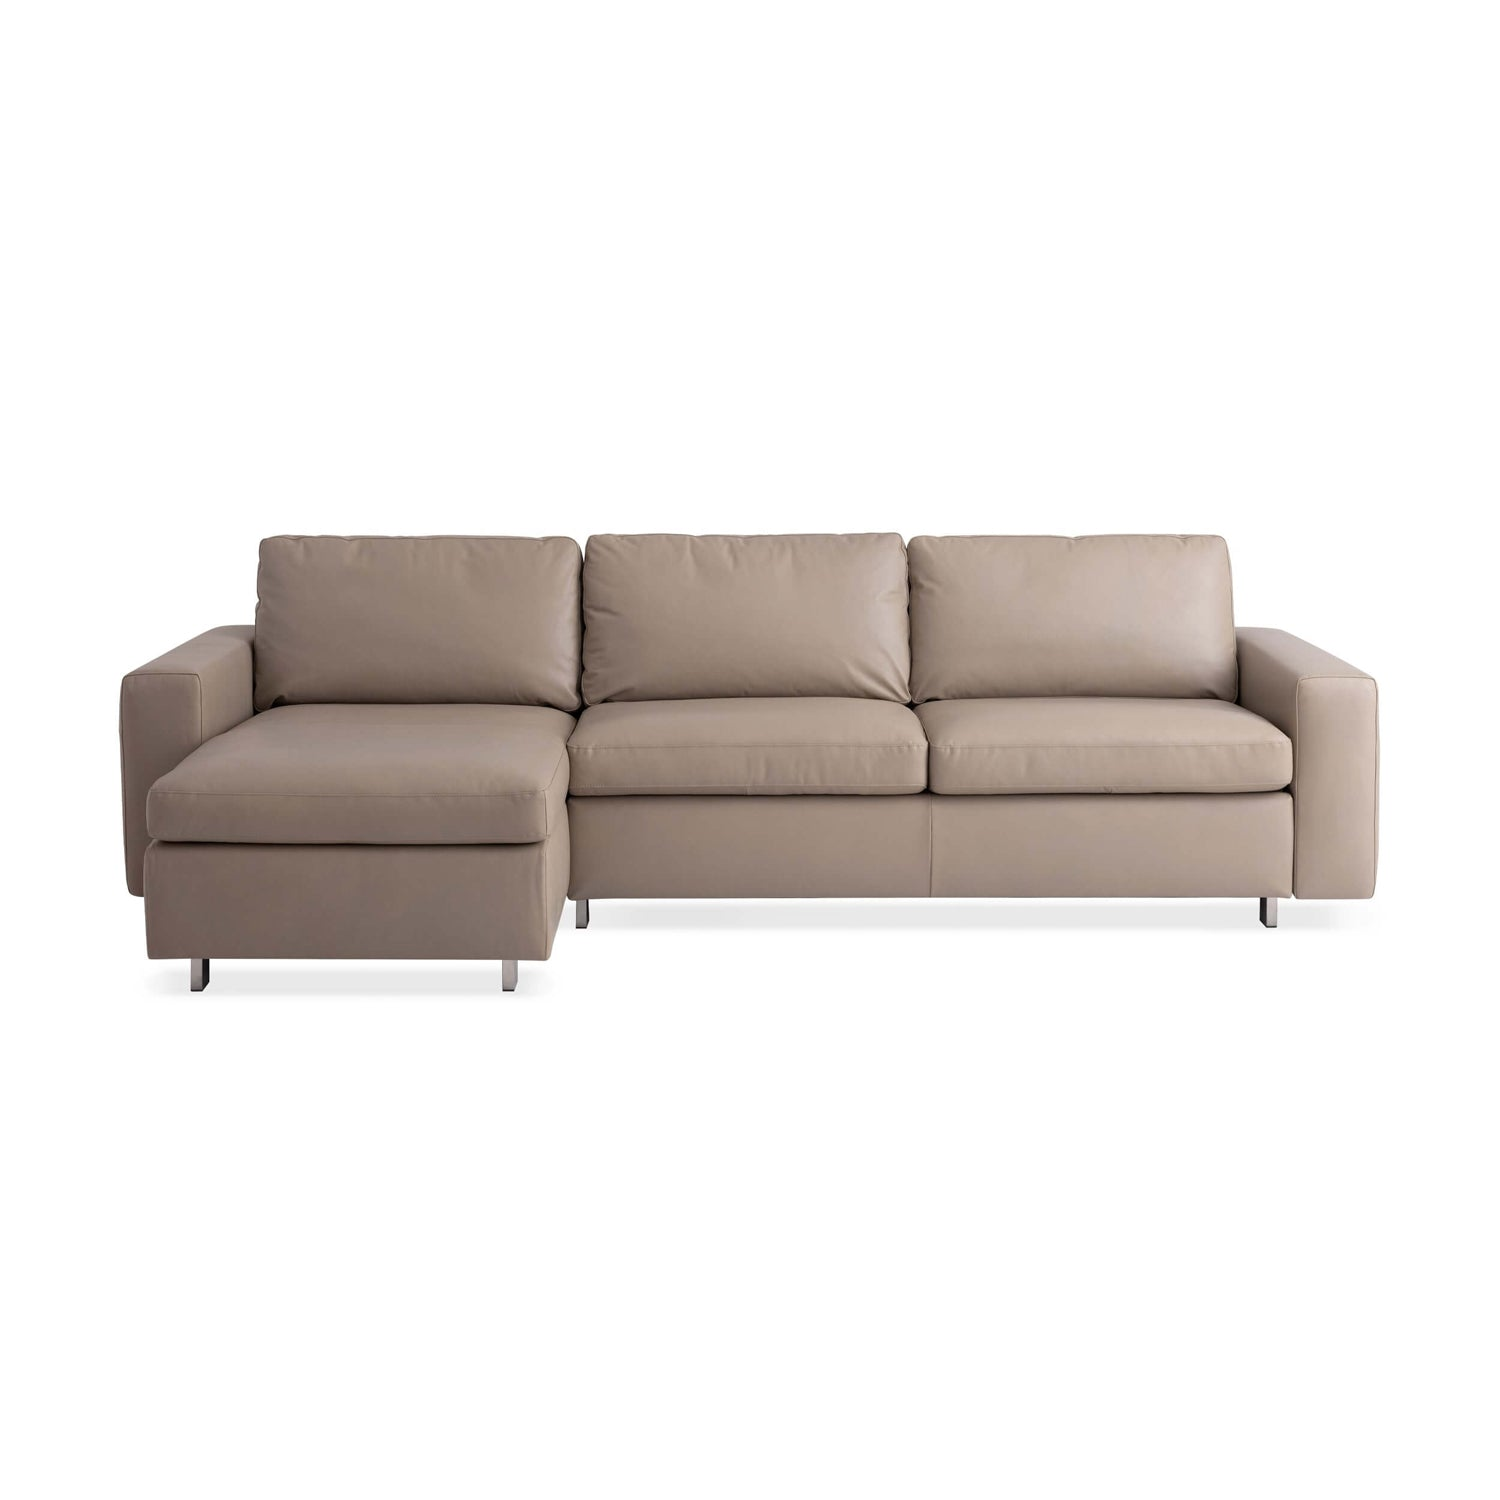 - Reva 2-Piece Sectional Sleeper Sofa With Storage Chaise - Leather